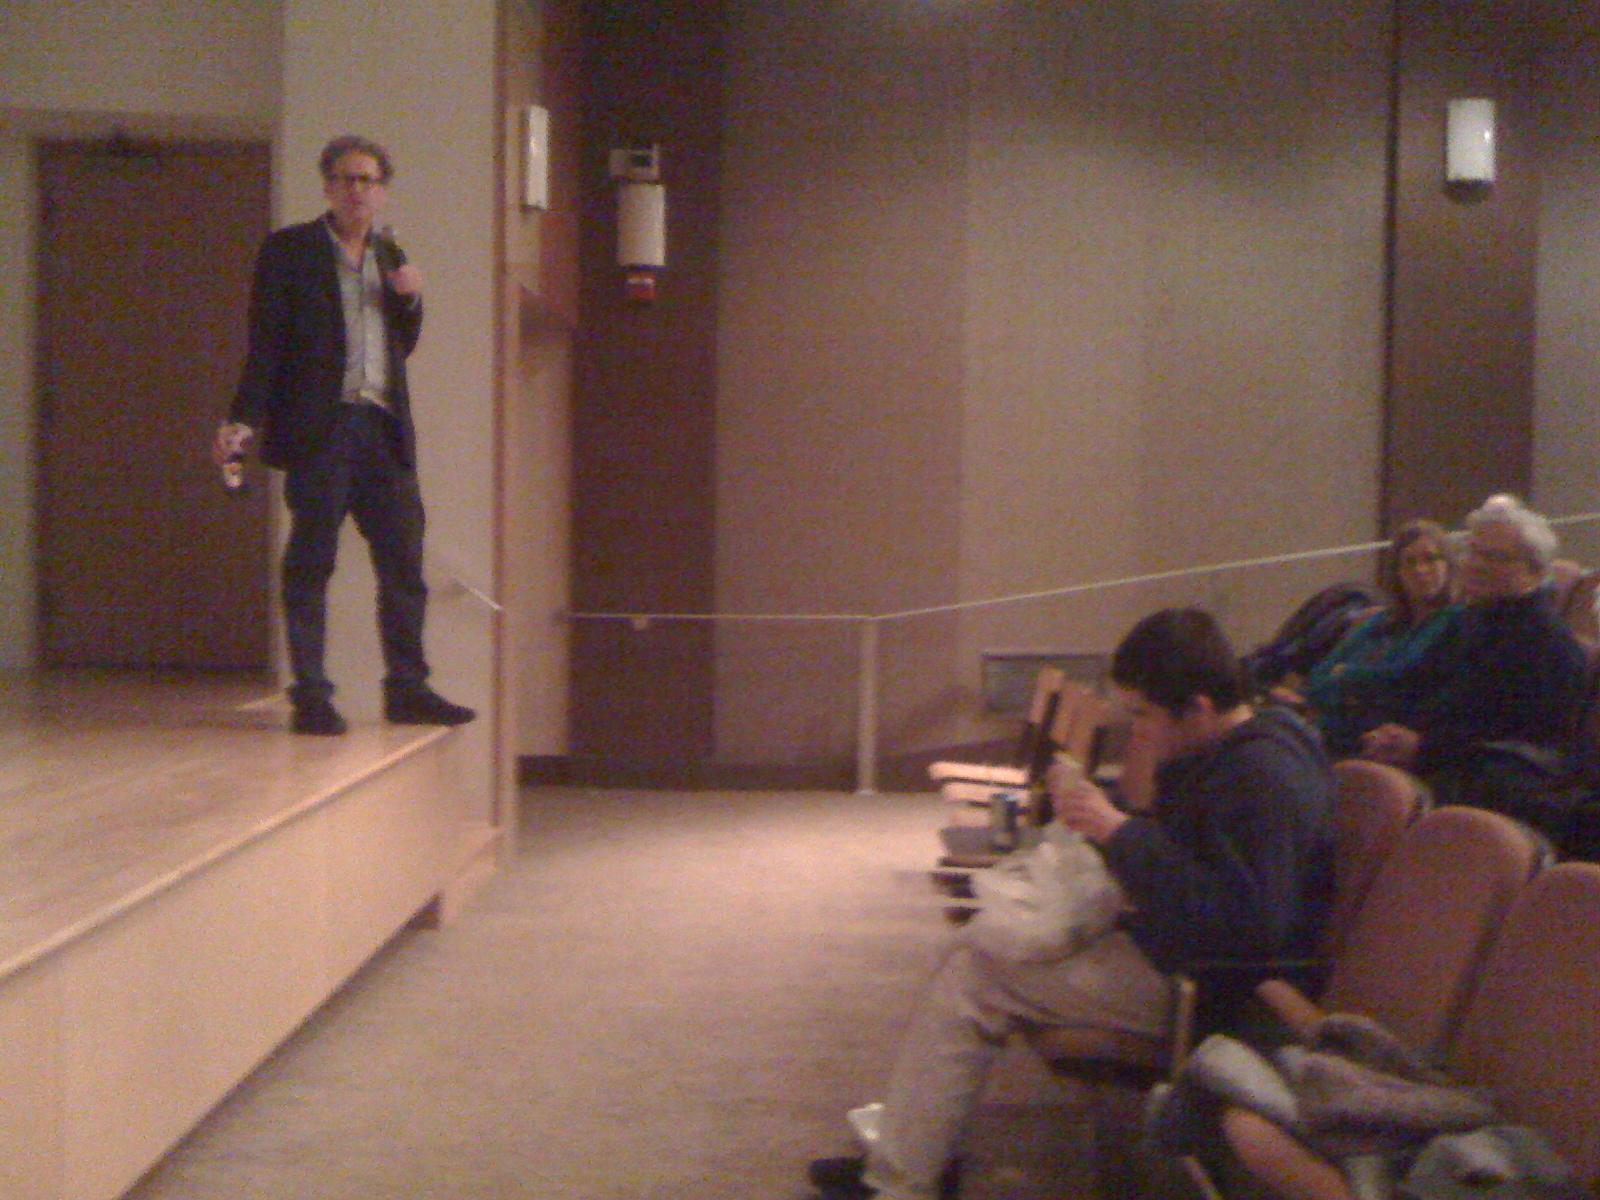 Jim speaking at Saint Peter's College, Charlie in the front row